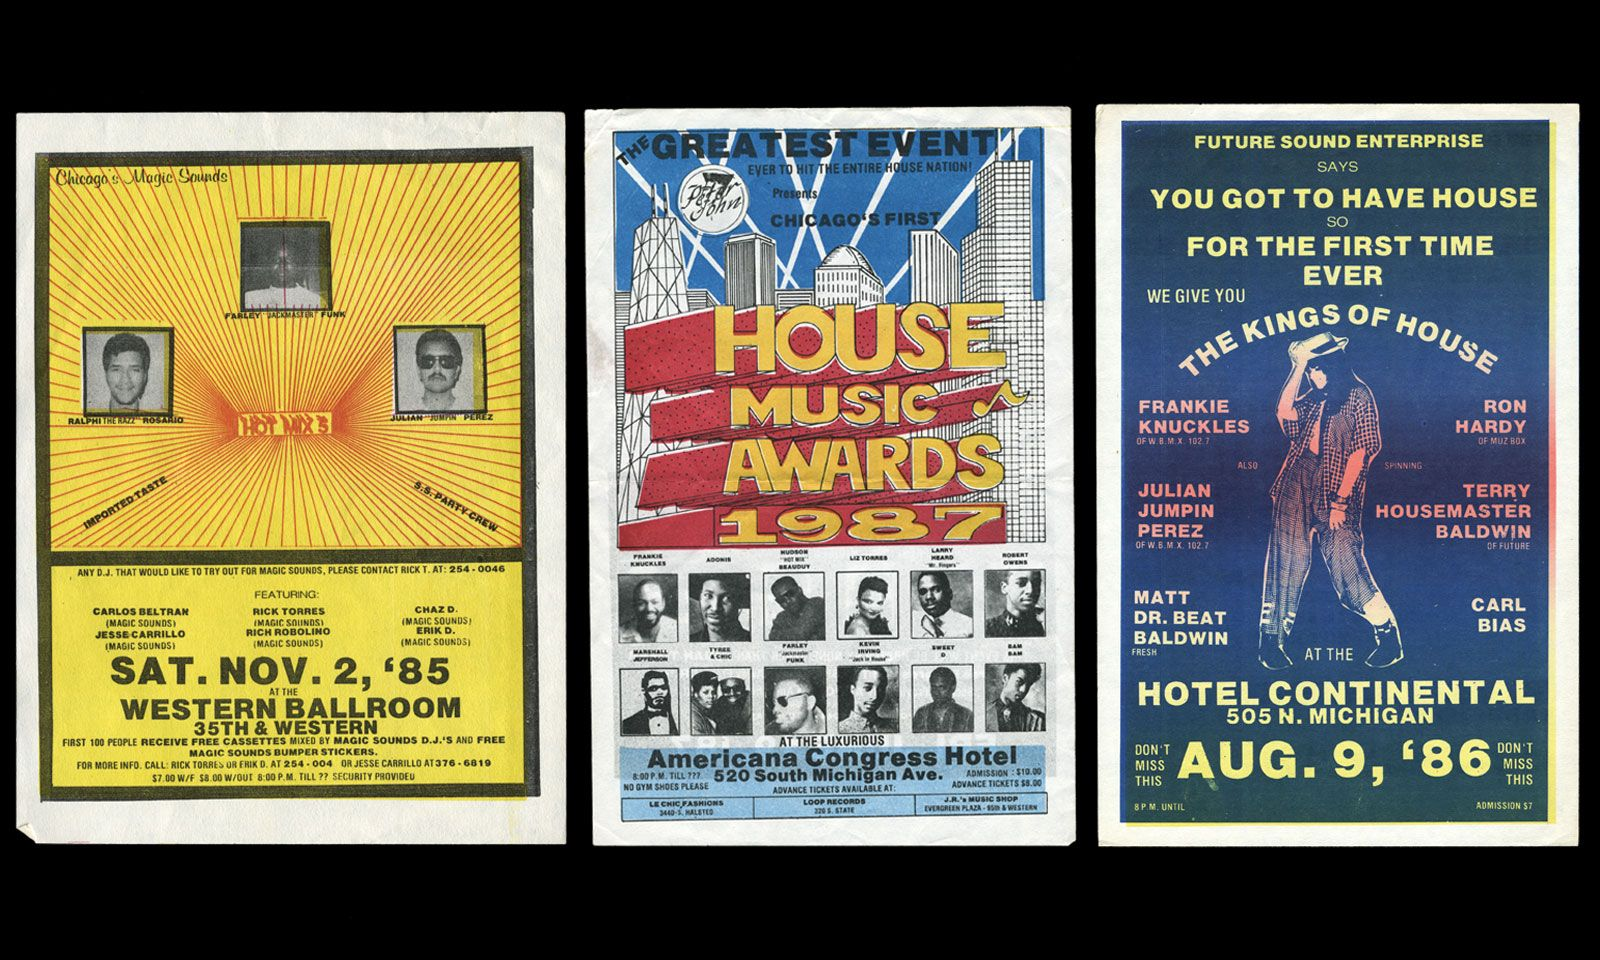 Pin By Breno Liguori On House Music Posters 90s House Music Concert Posters Music Poster